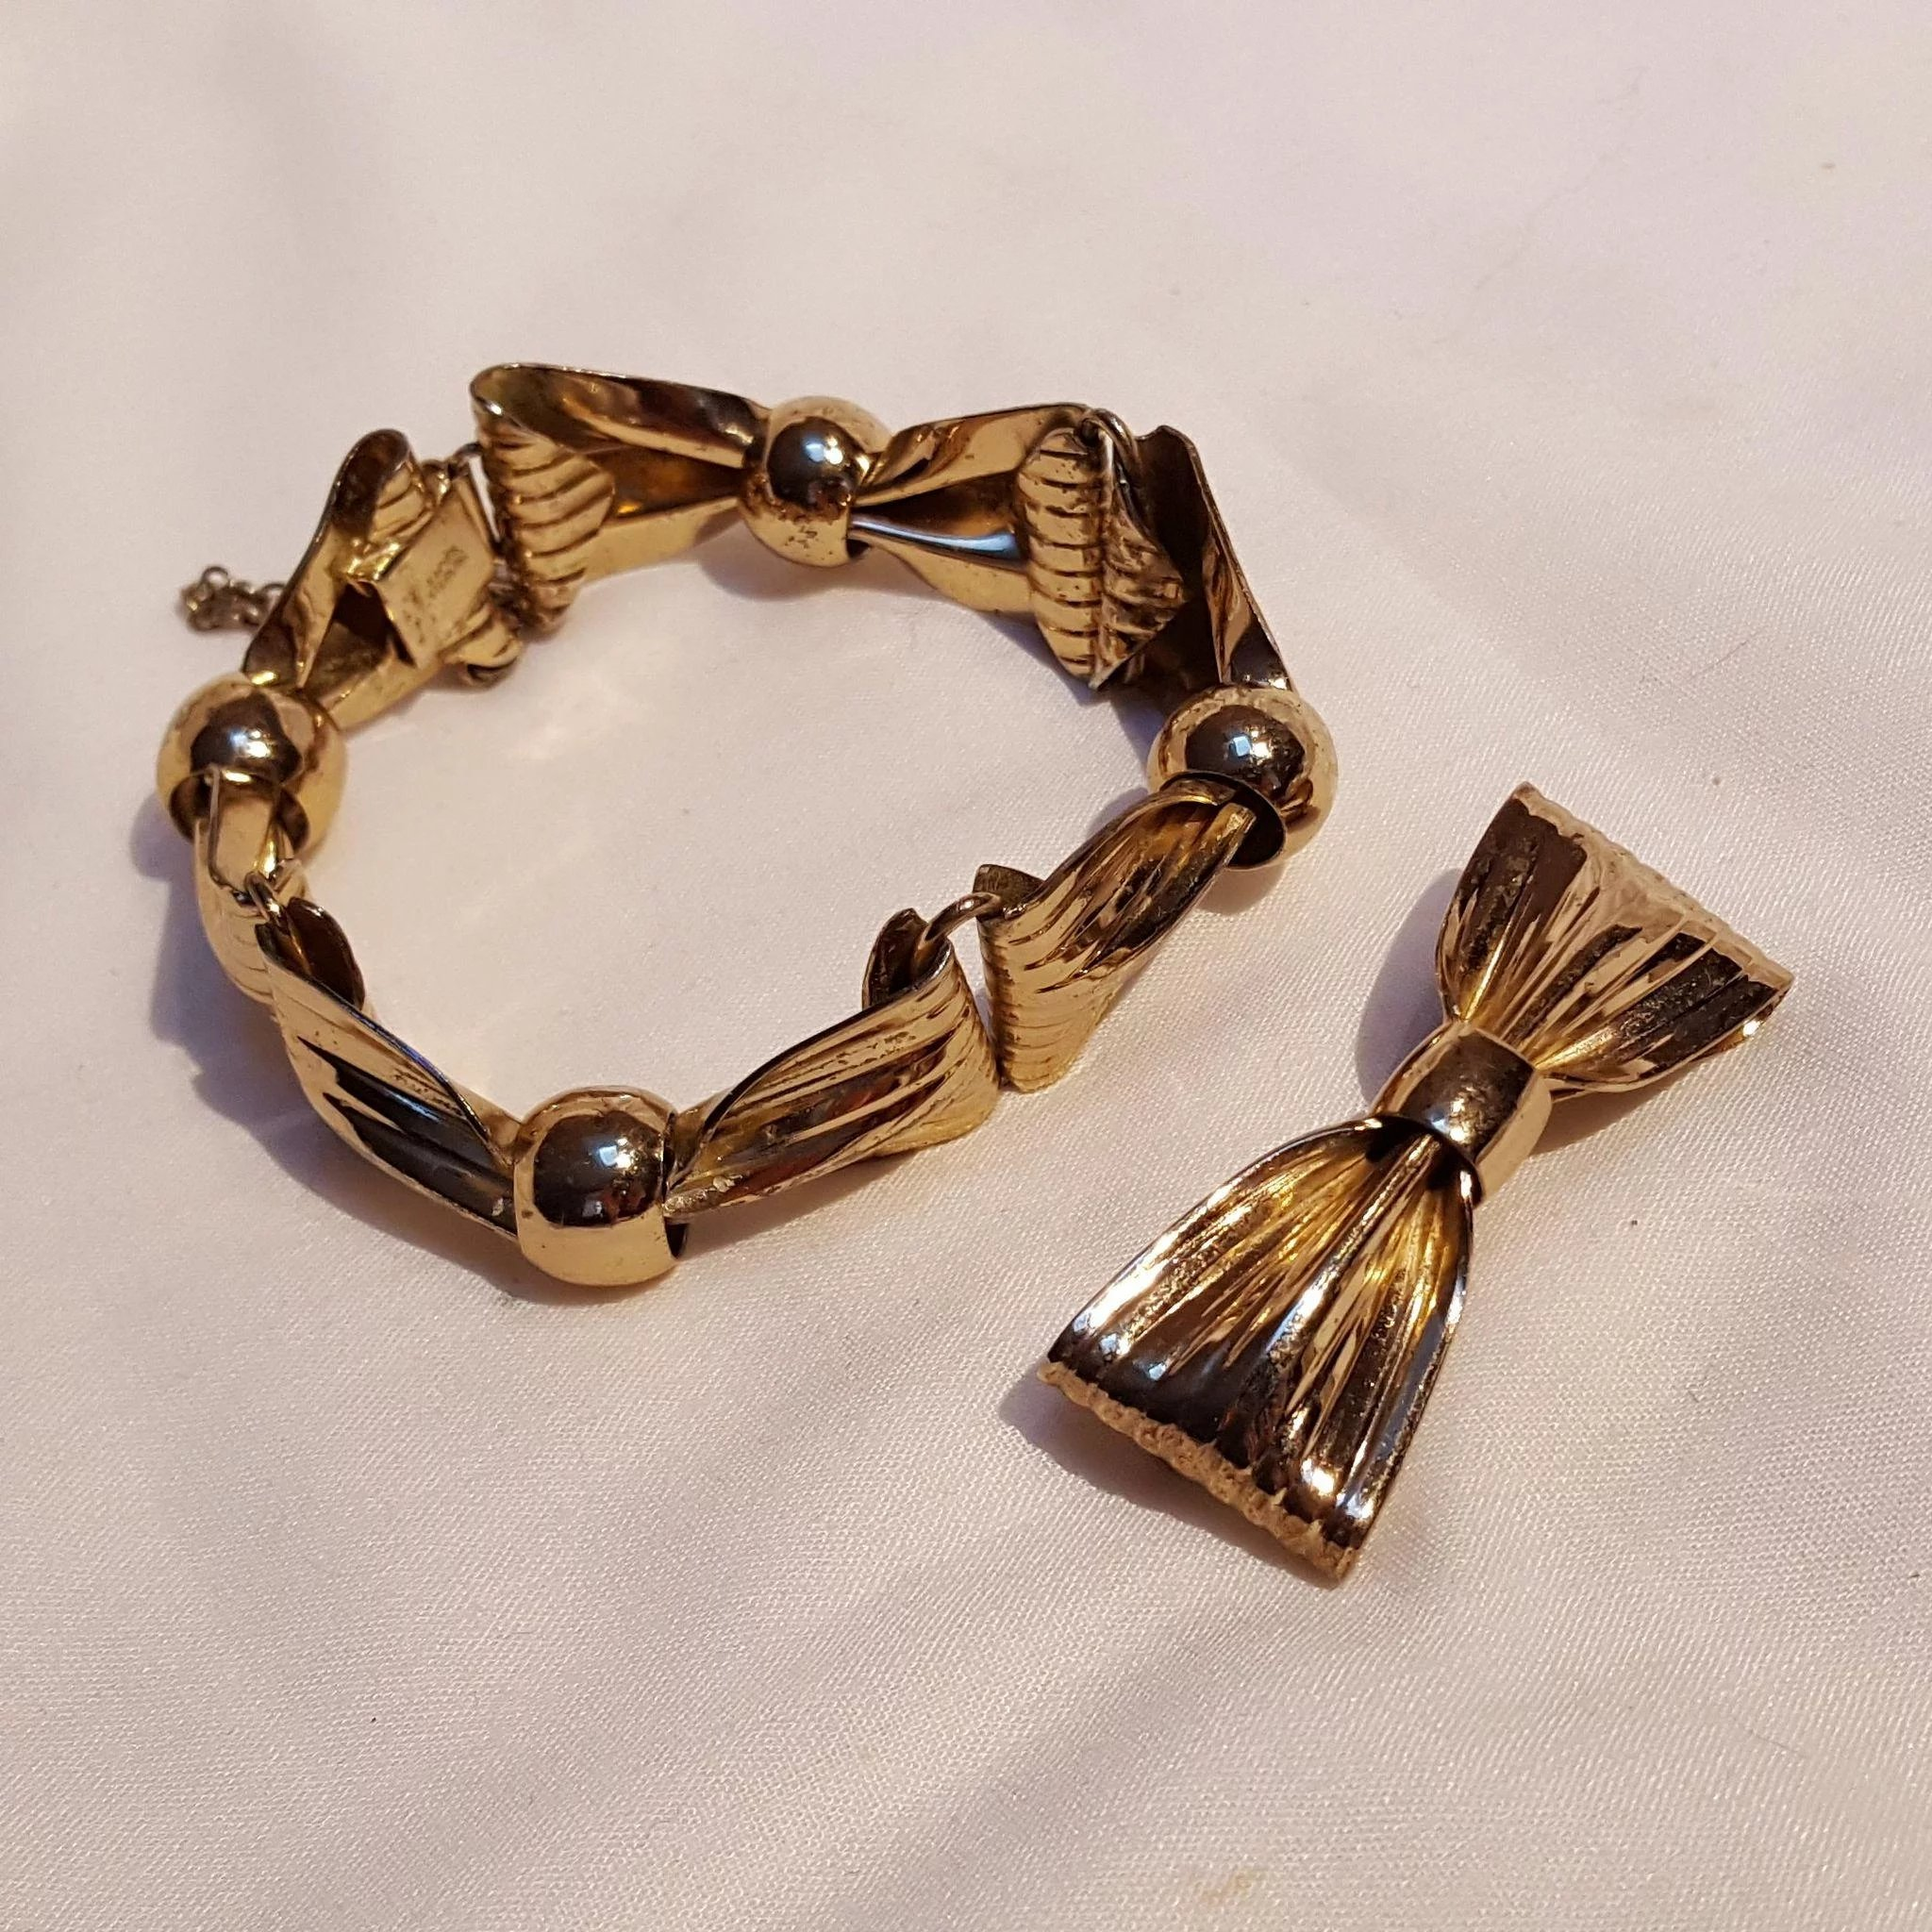 diy bracelet to make how bow